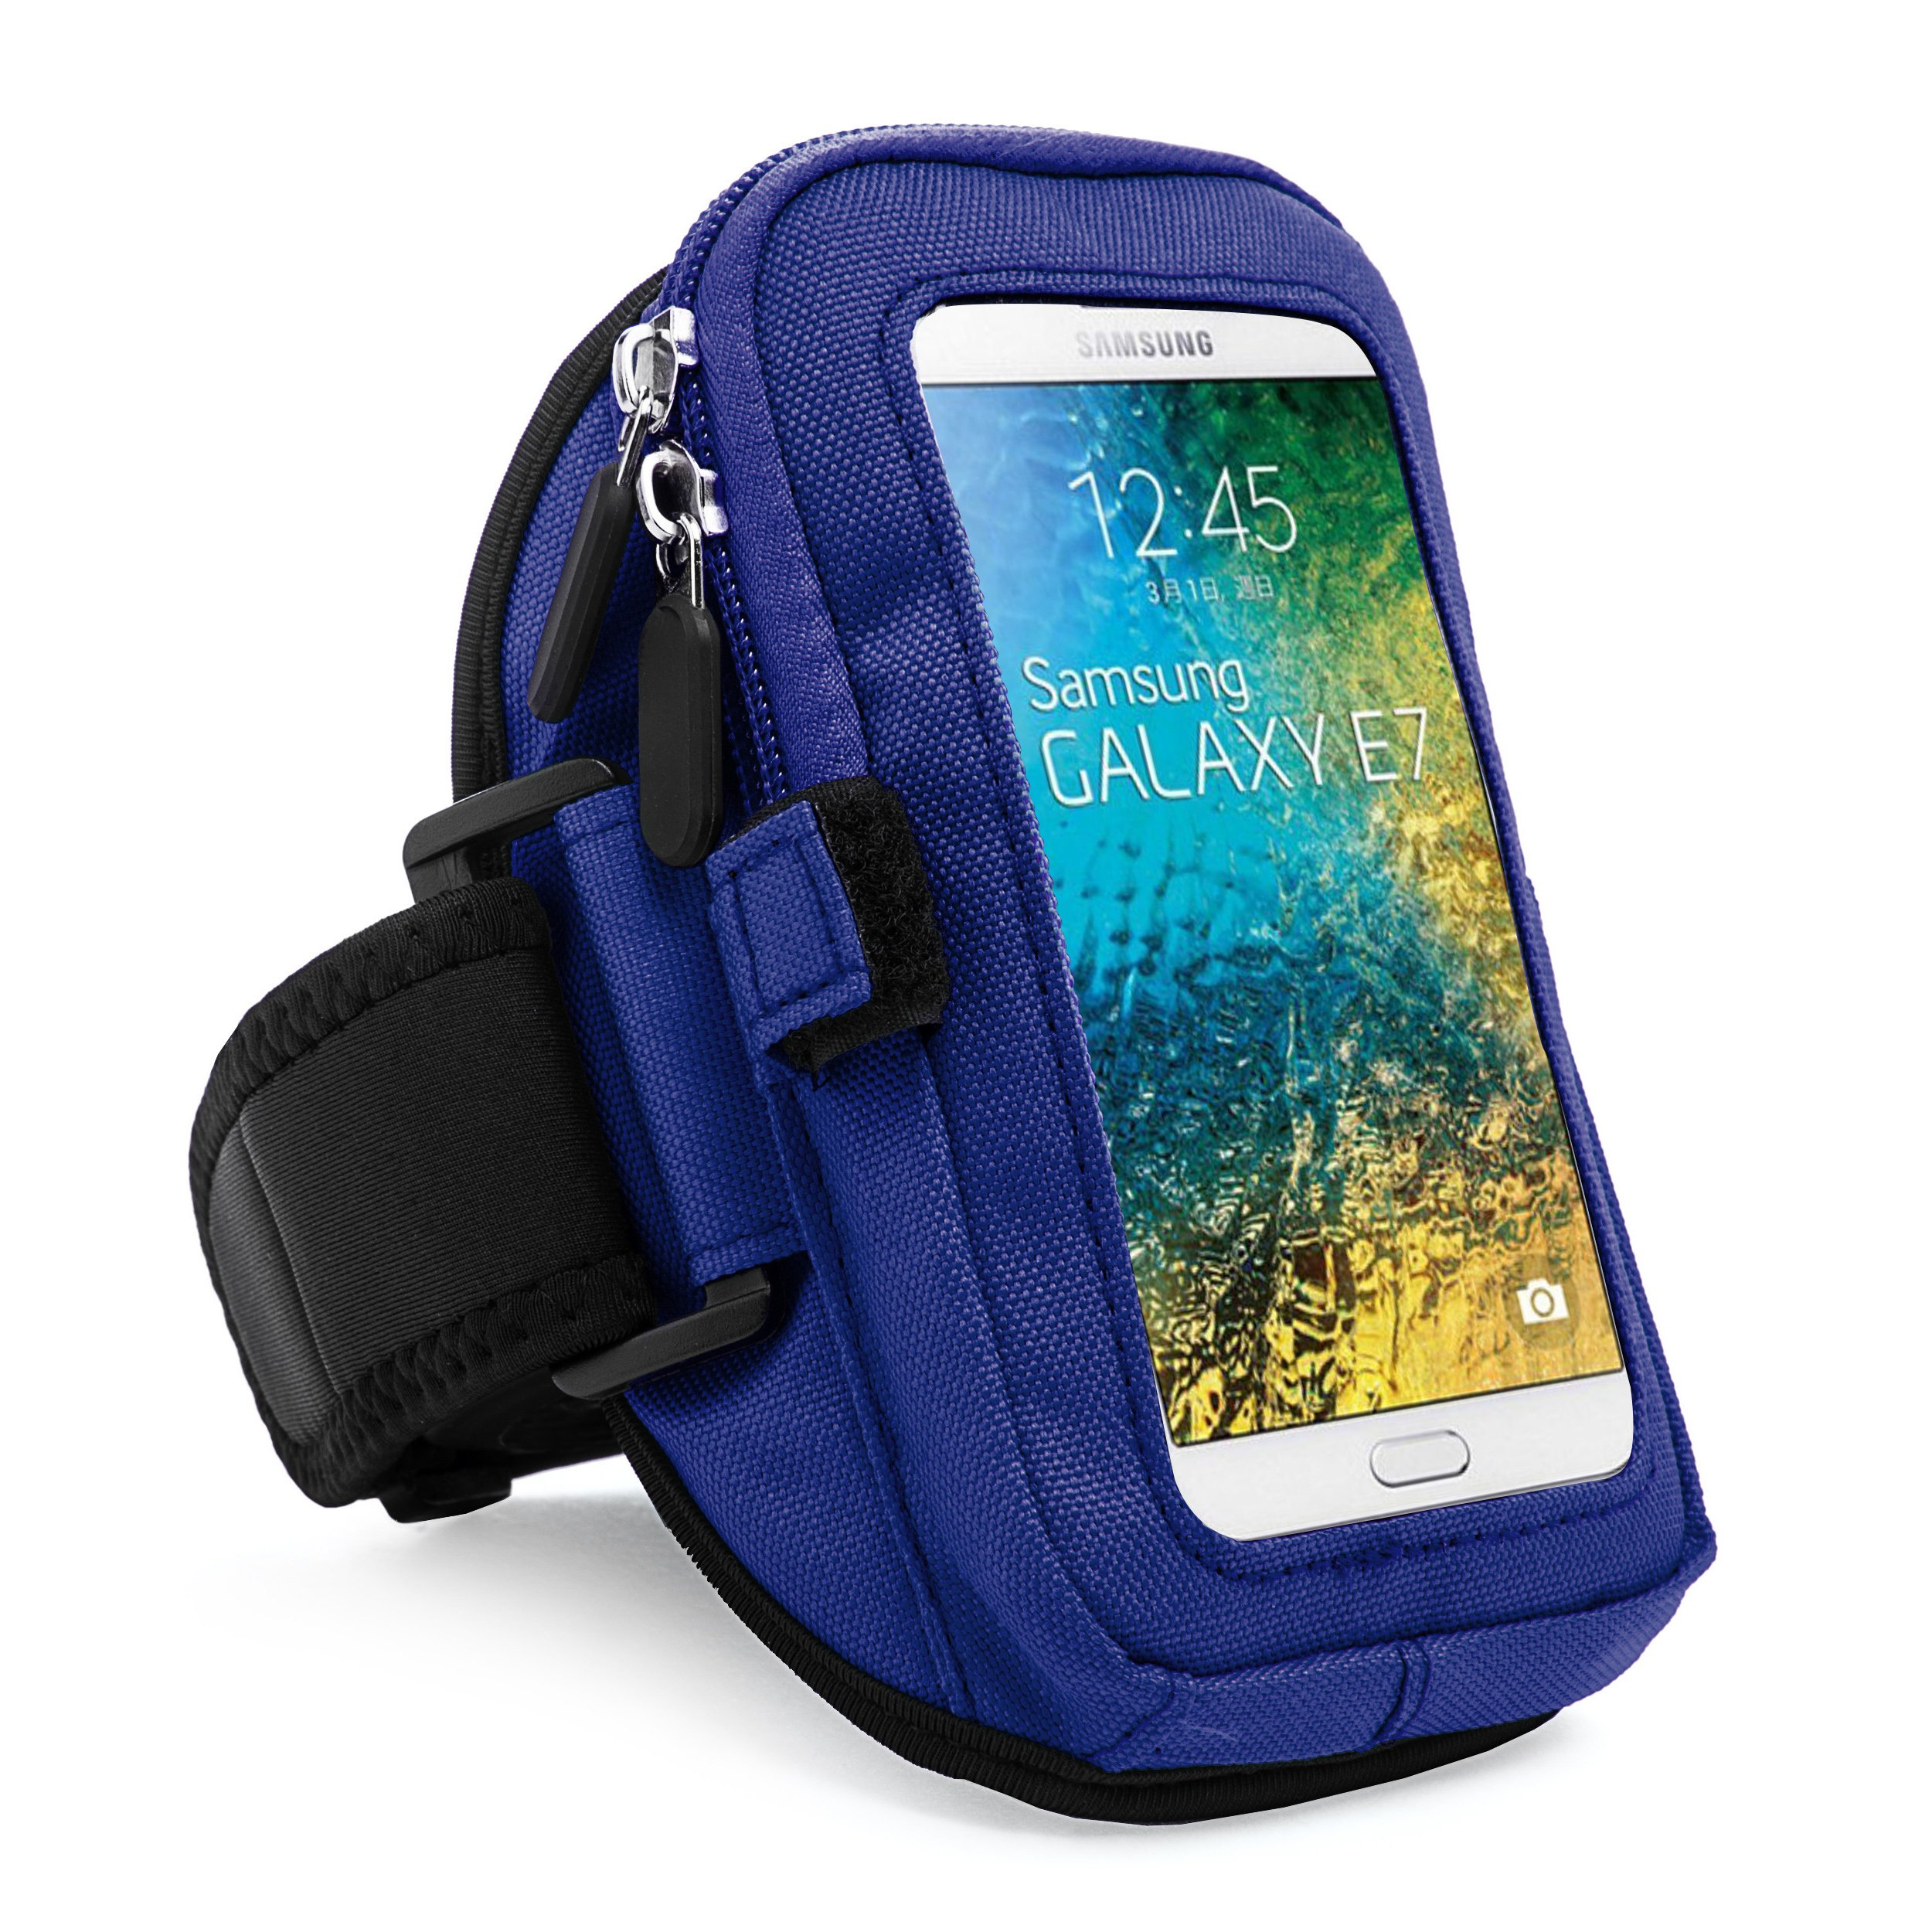 VanGoddy zippered Sport Case Cover Gym Running Armband with removable strap & card/key holder for Samsung Galaxy E7/A7/A5/A3 Fit 4.7 to 5.5 inch Ios Android Windows smart Phone (Blue)